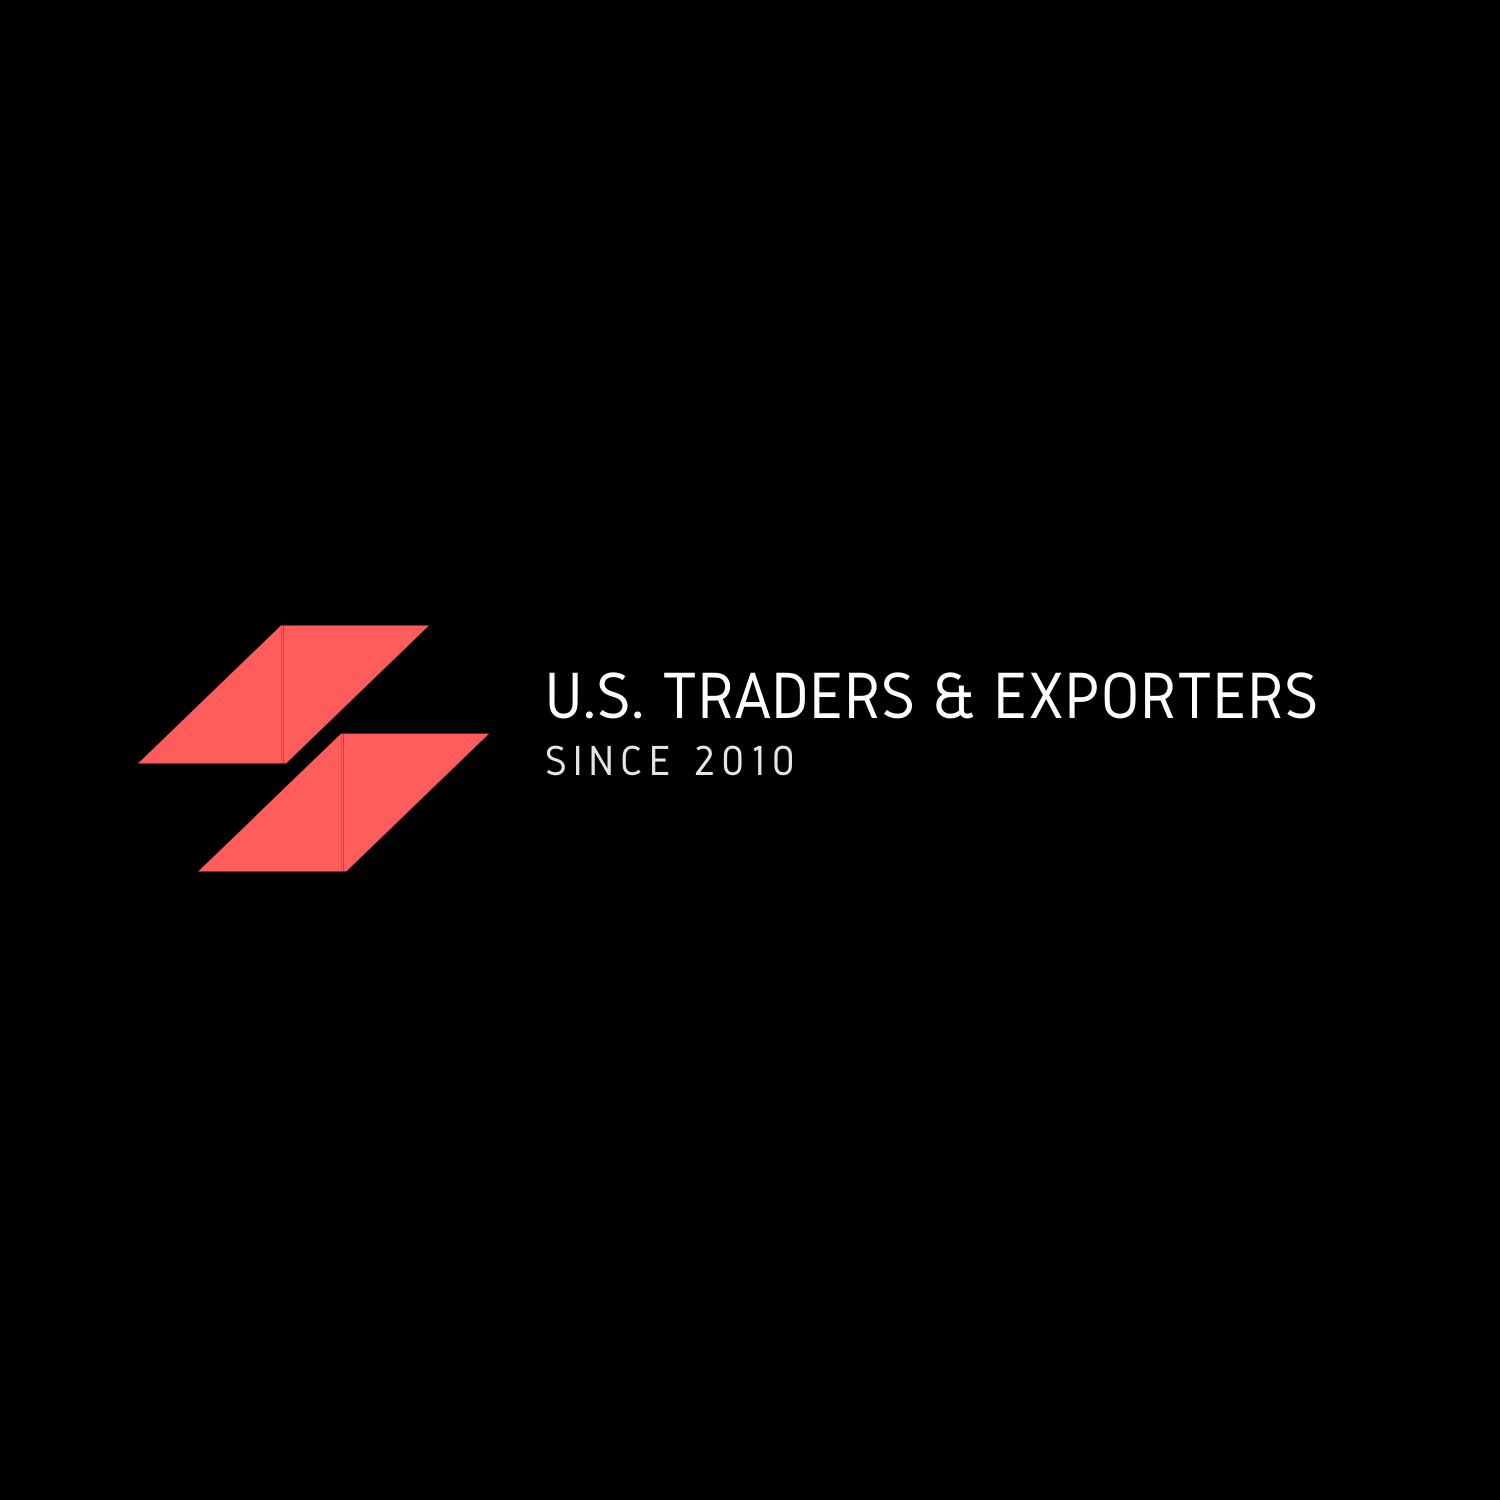 US Traders & Exporters